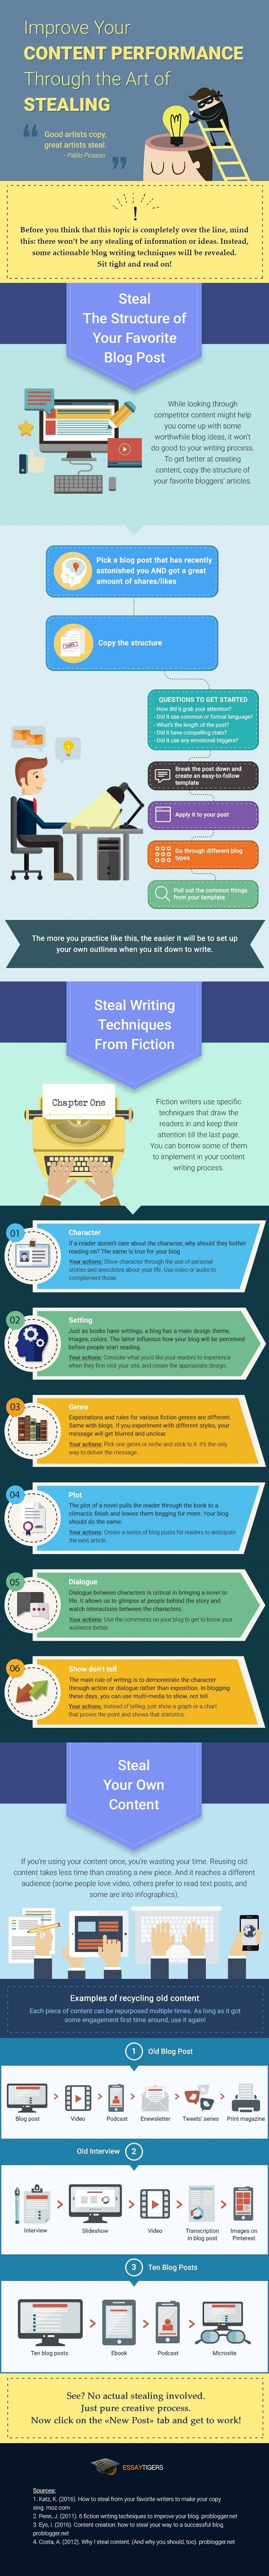 Writing - How to Improve Blog Writing Through the Art of 'Stealing' [Infographic] : MarketingProfs Article